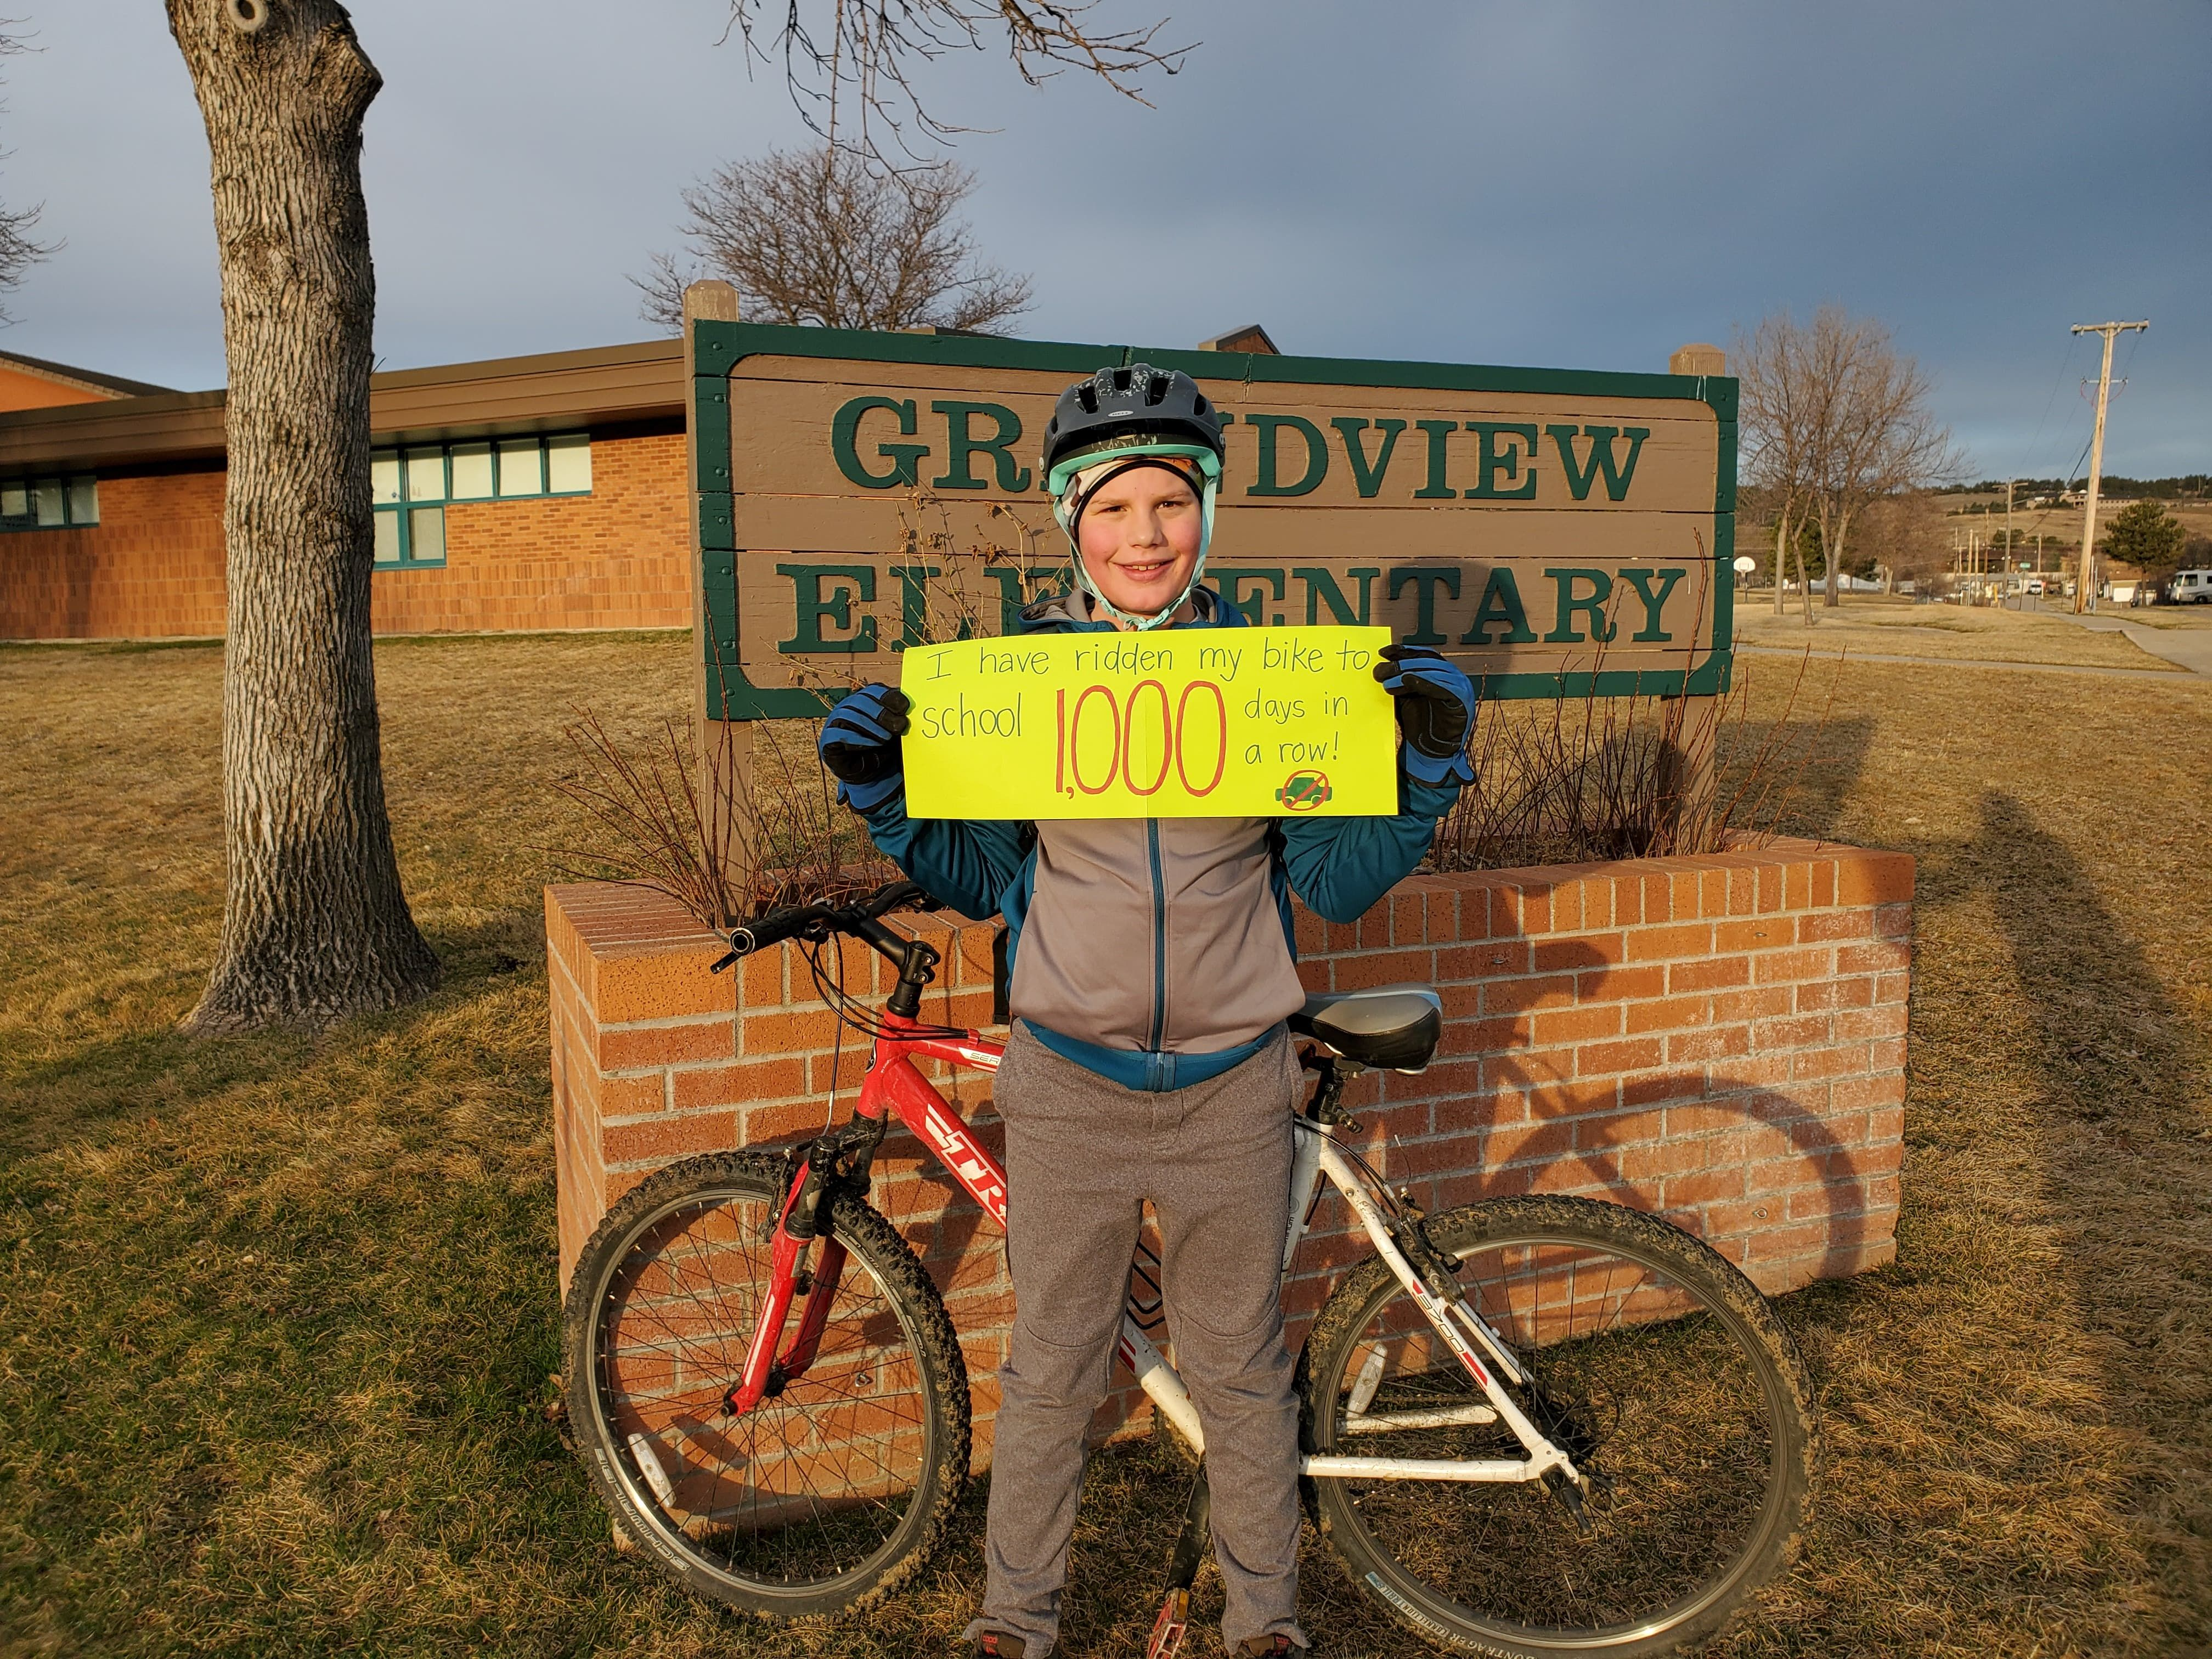 This Young Cyclist Rode His Bike to School Every Day for 1,000 Days